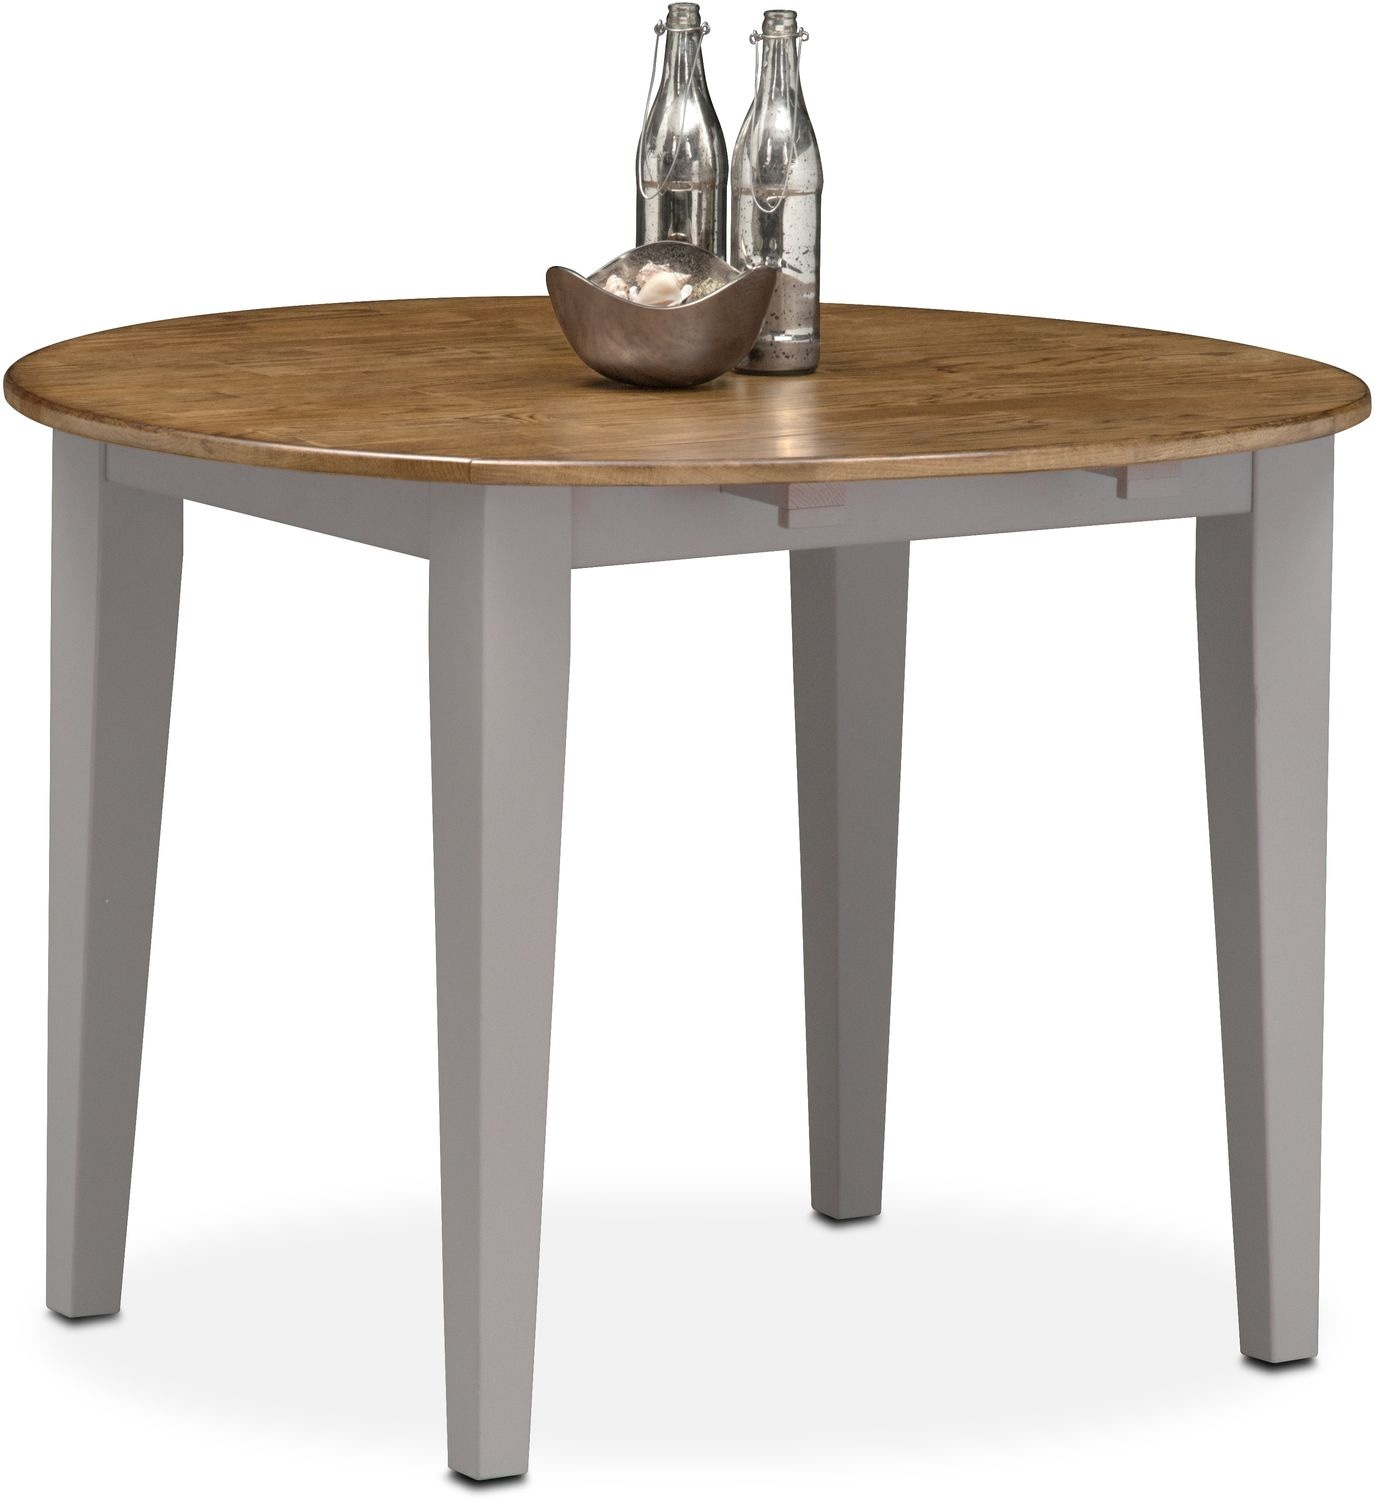 nantucket drop leaf table oak and gray american signature furniture small accent side distressed black end design plans terrace umbrella blue comfortable drum throne king bedding